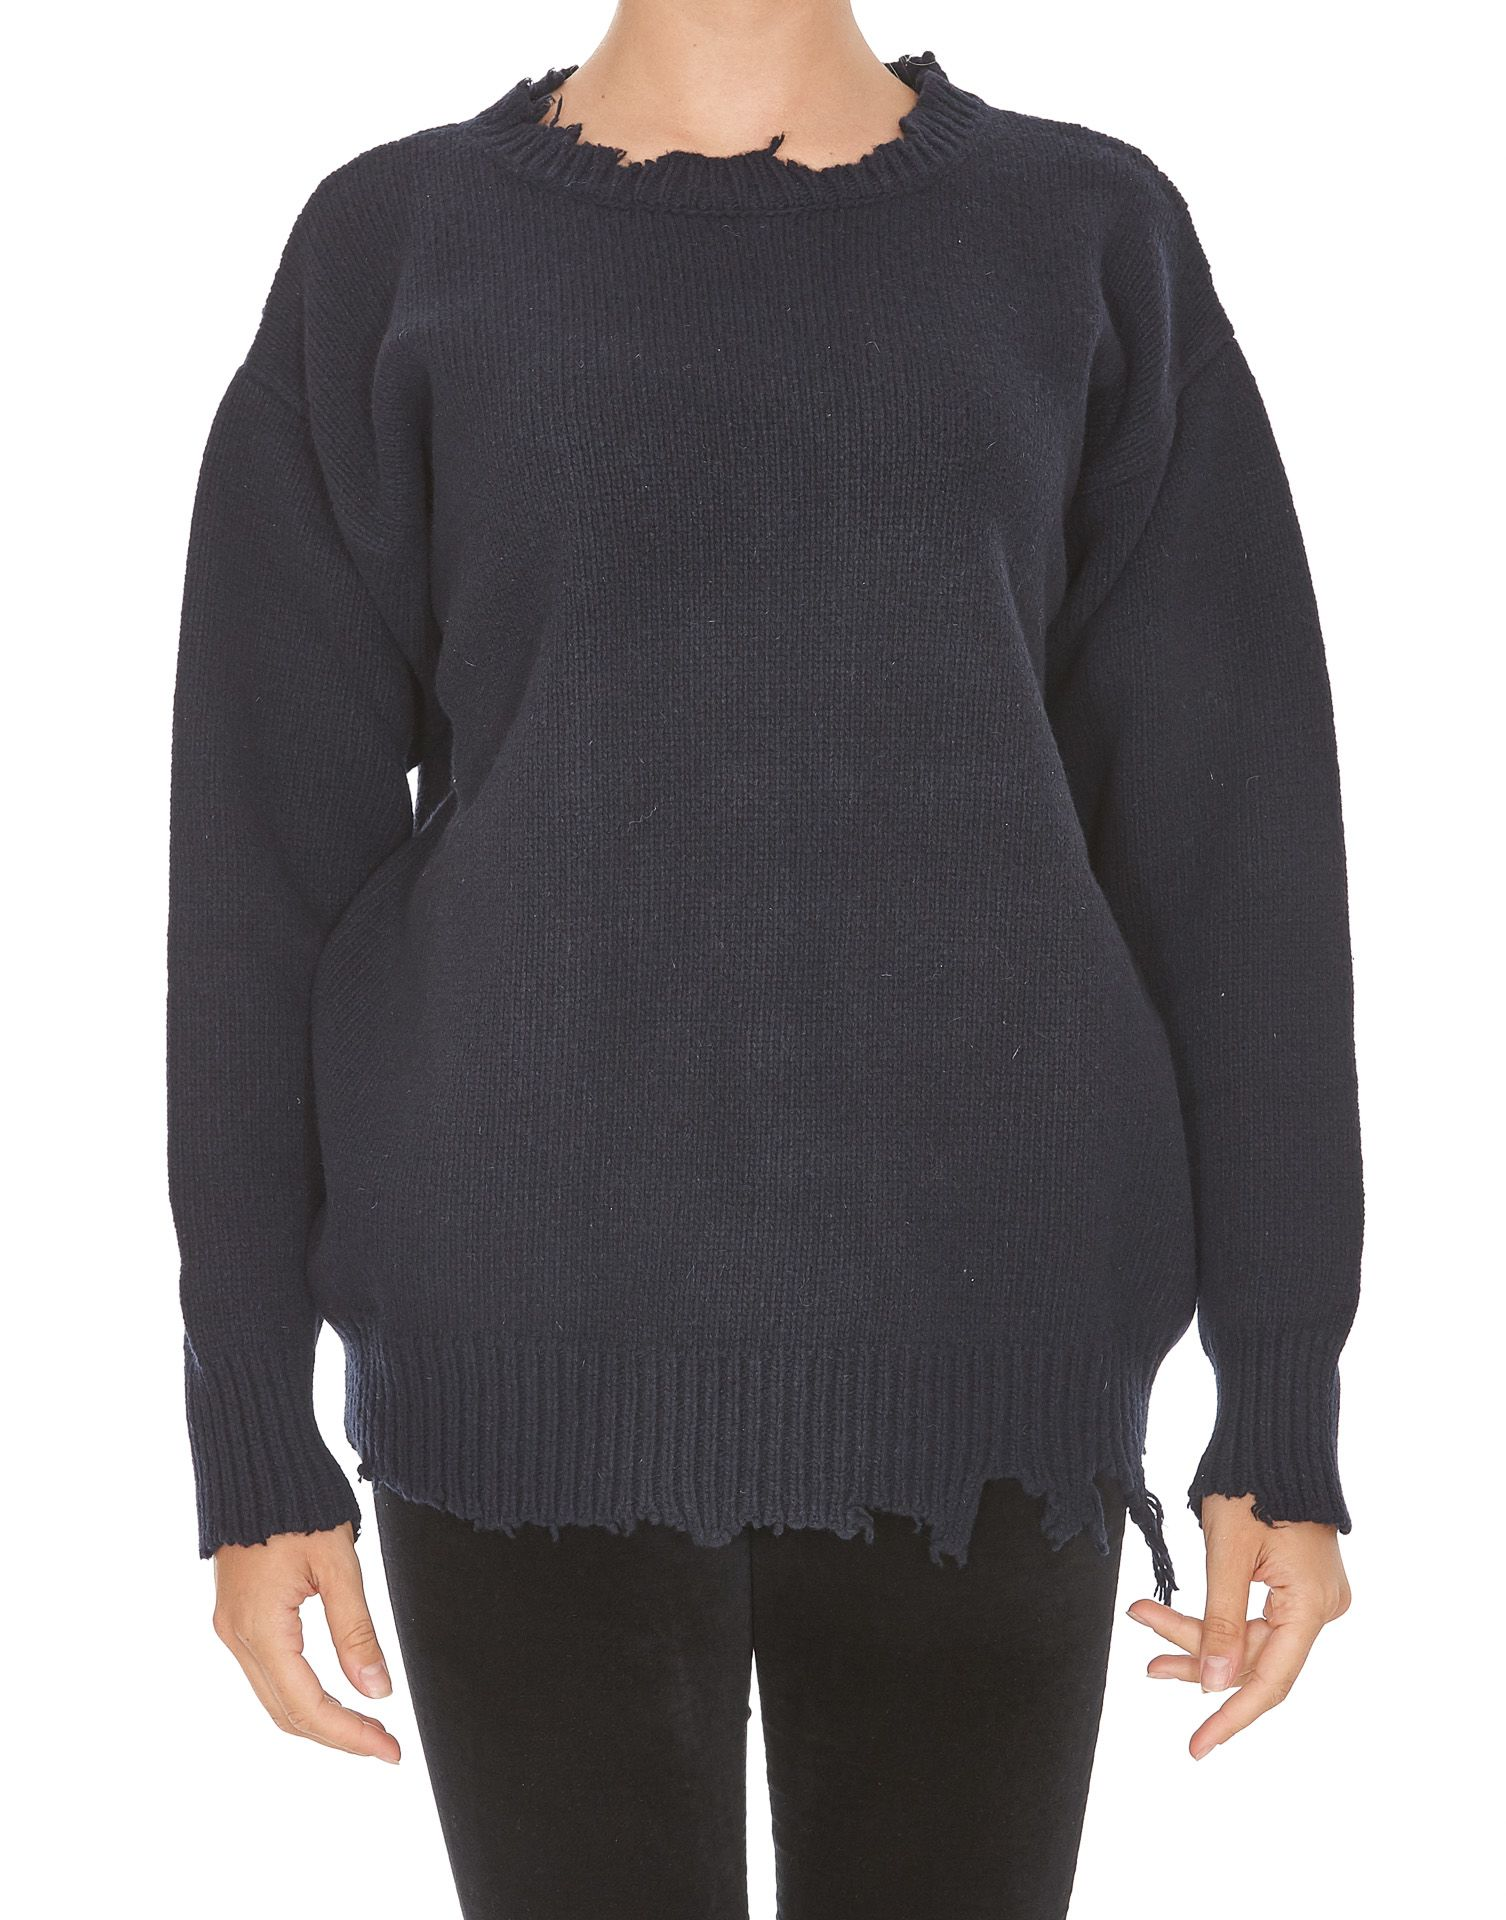 Department 5 Janet Sweater